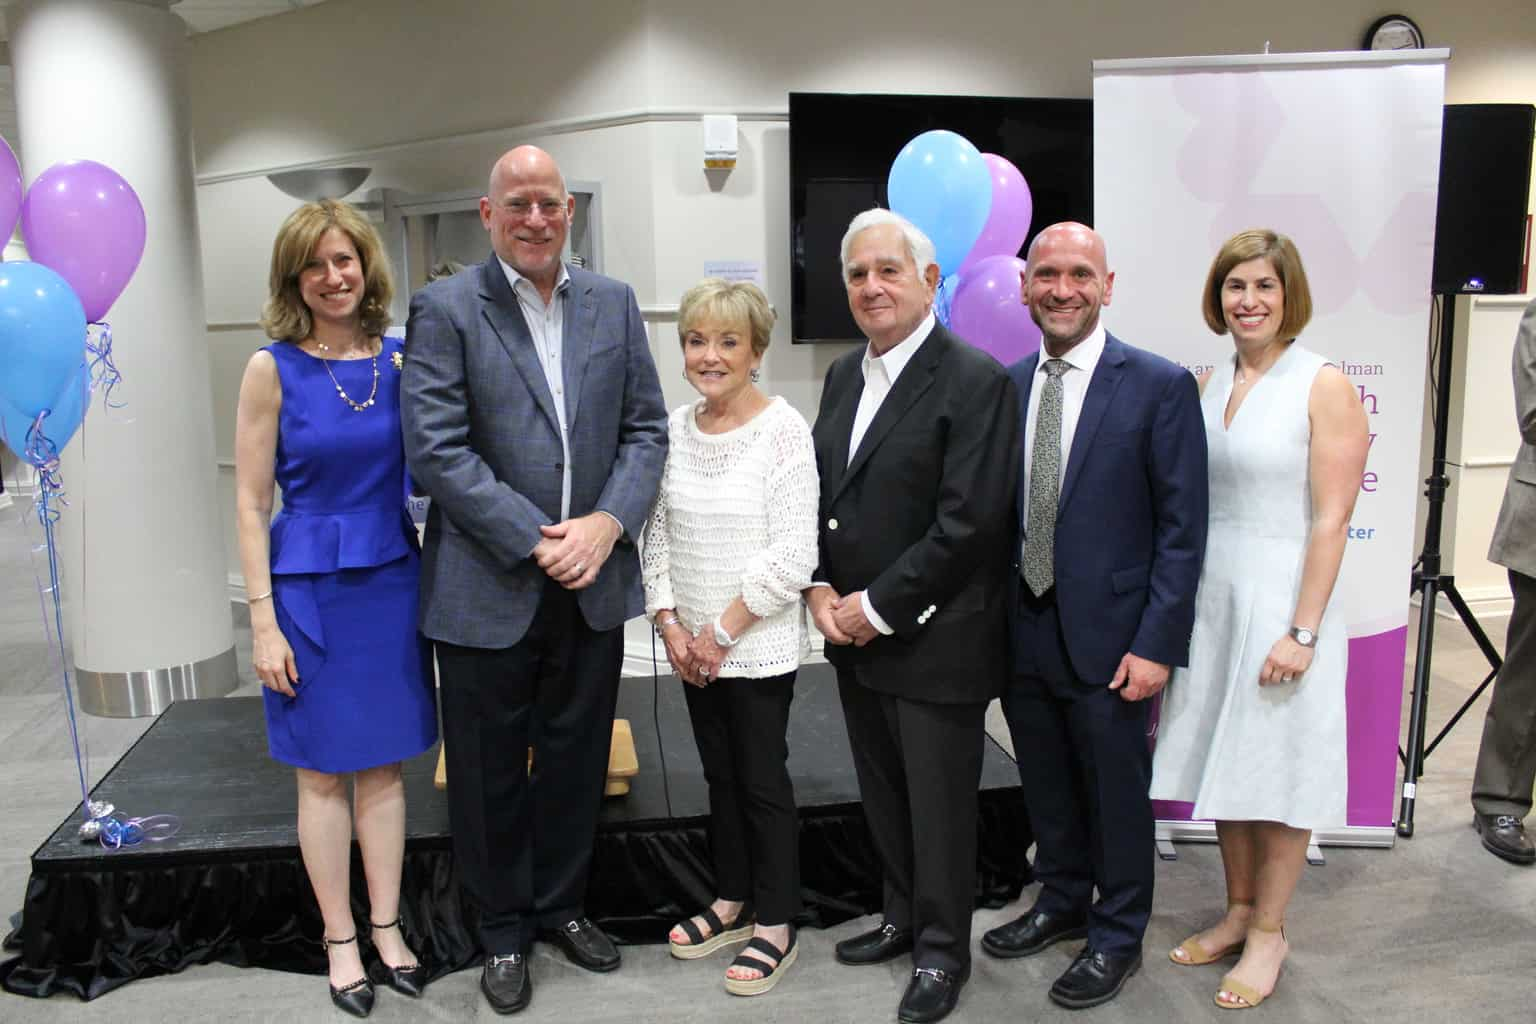 jewish-family-service-launches-7-5-million-endowment-campaign-with-2-5-million-lead-gift